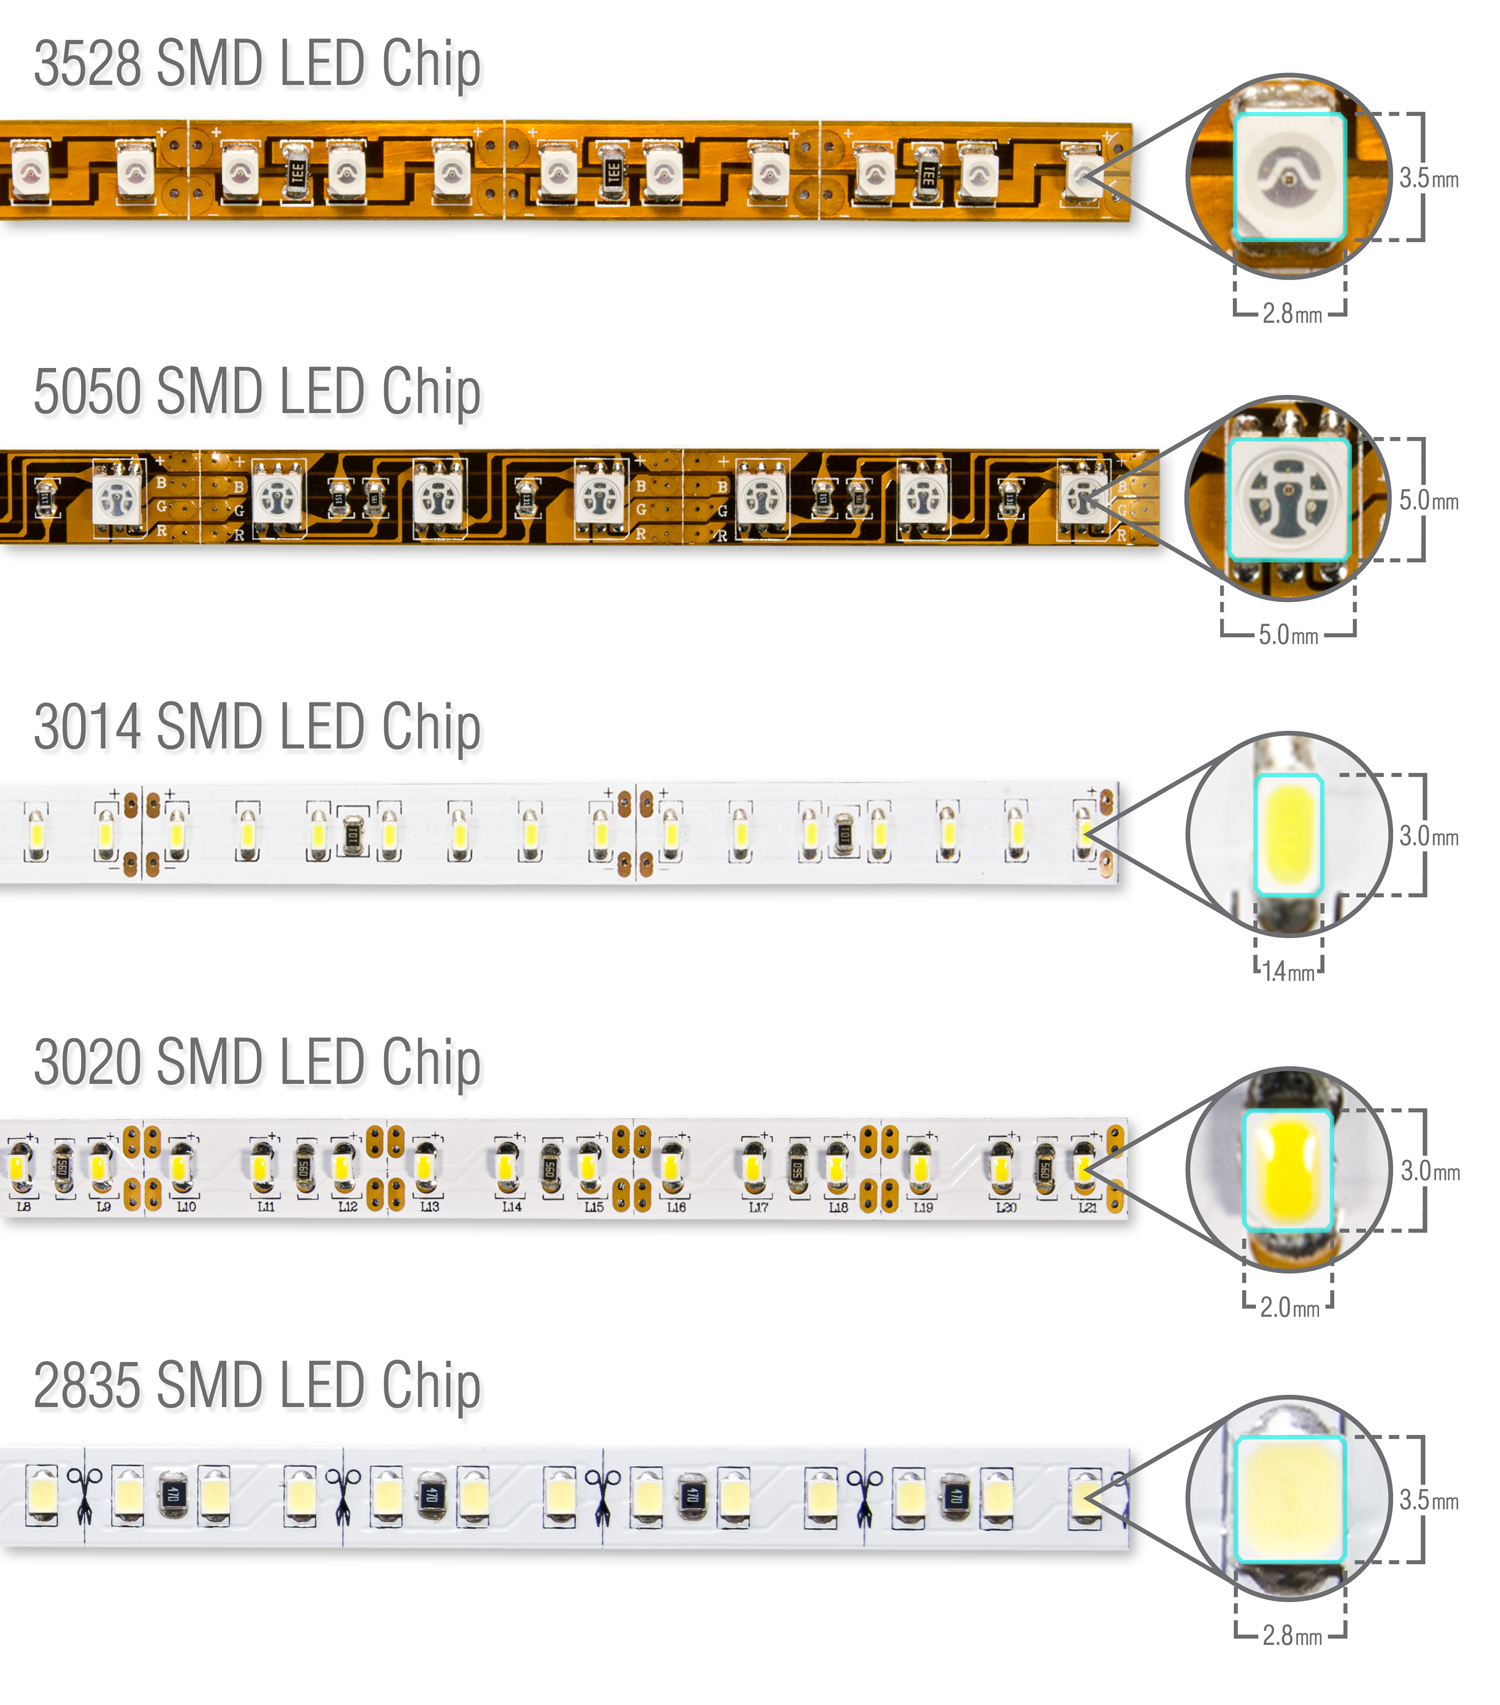 LED strip light - Wikipedia